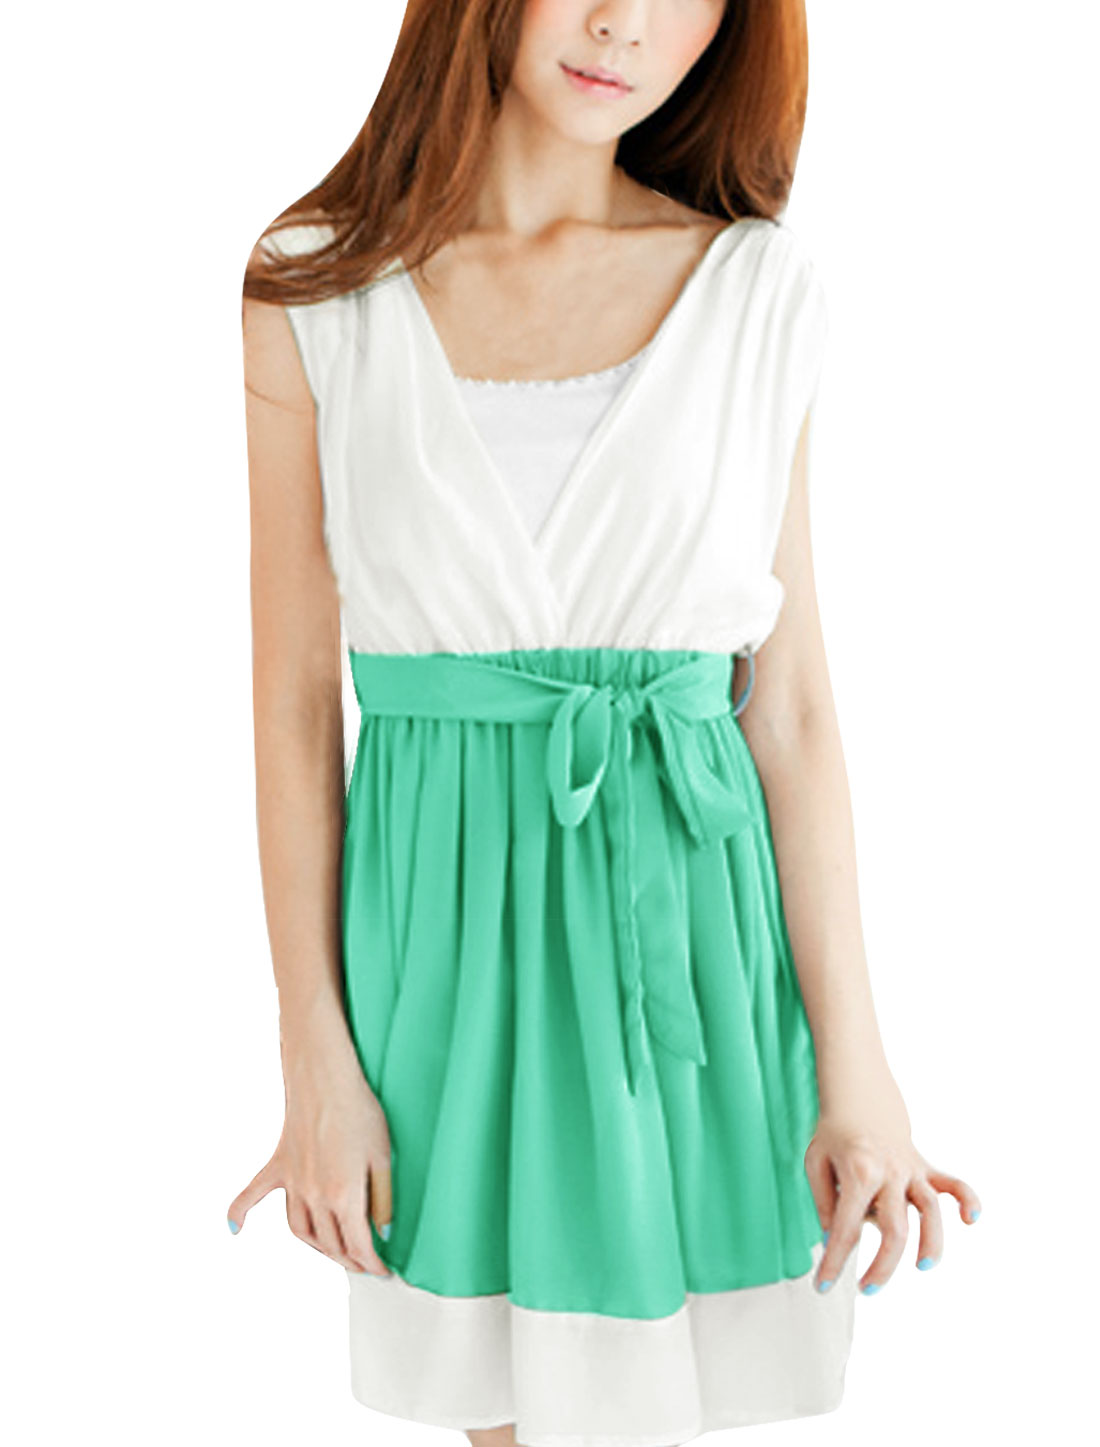 Woman Deep V-Neck Sleeveless Green White A-Line Dress XS w Tube Top